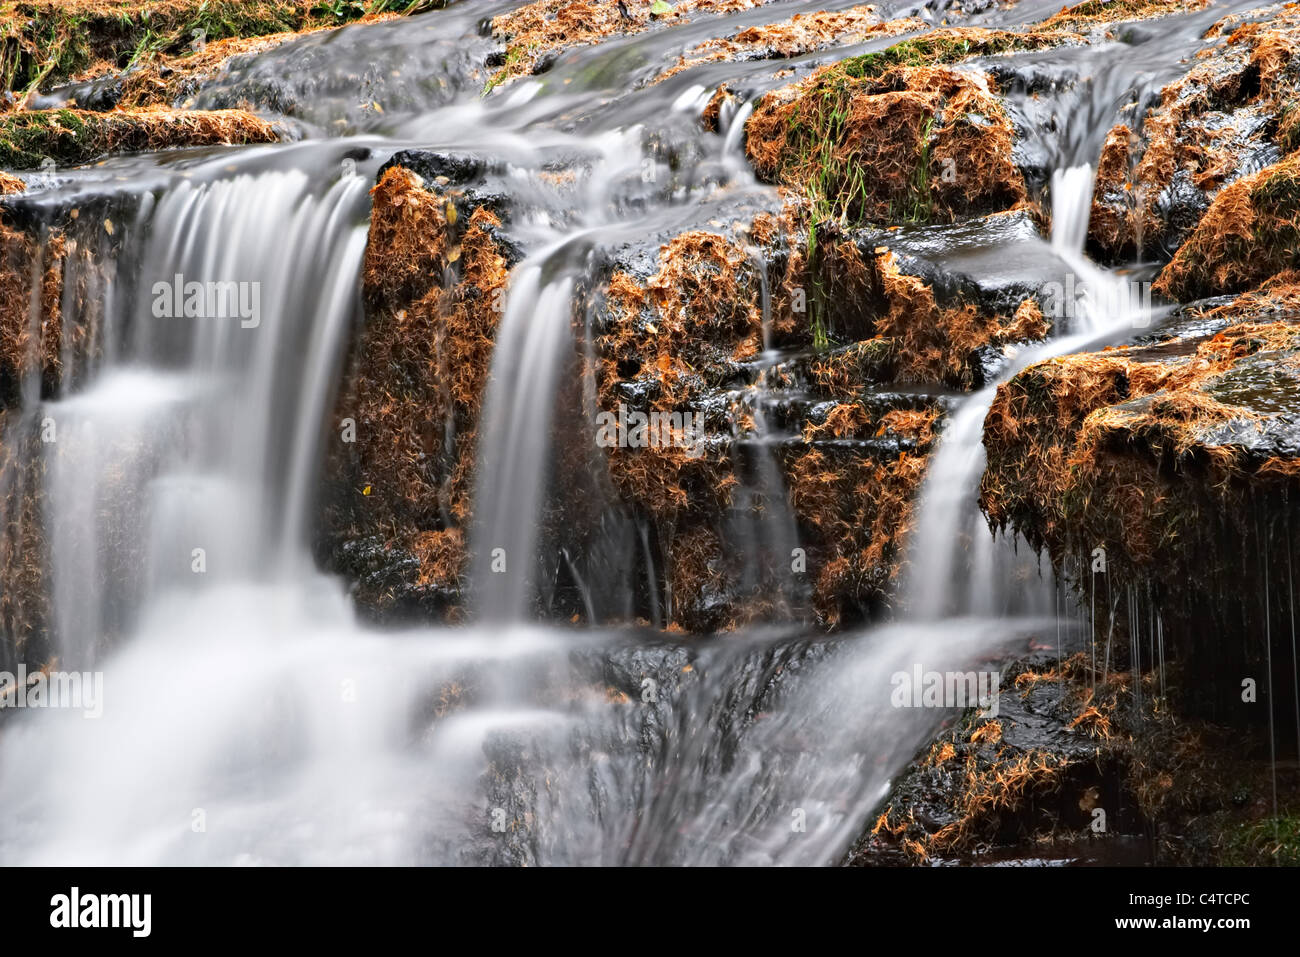 Blaen-y-glyn waterfalls, Talybont Forest, Brecon Beacons National Park, Wales Stock Photo